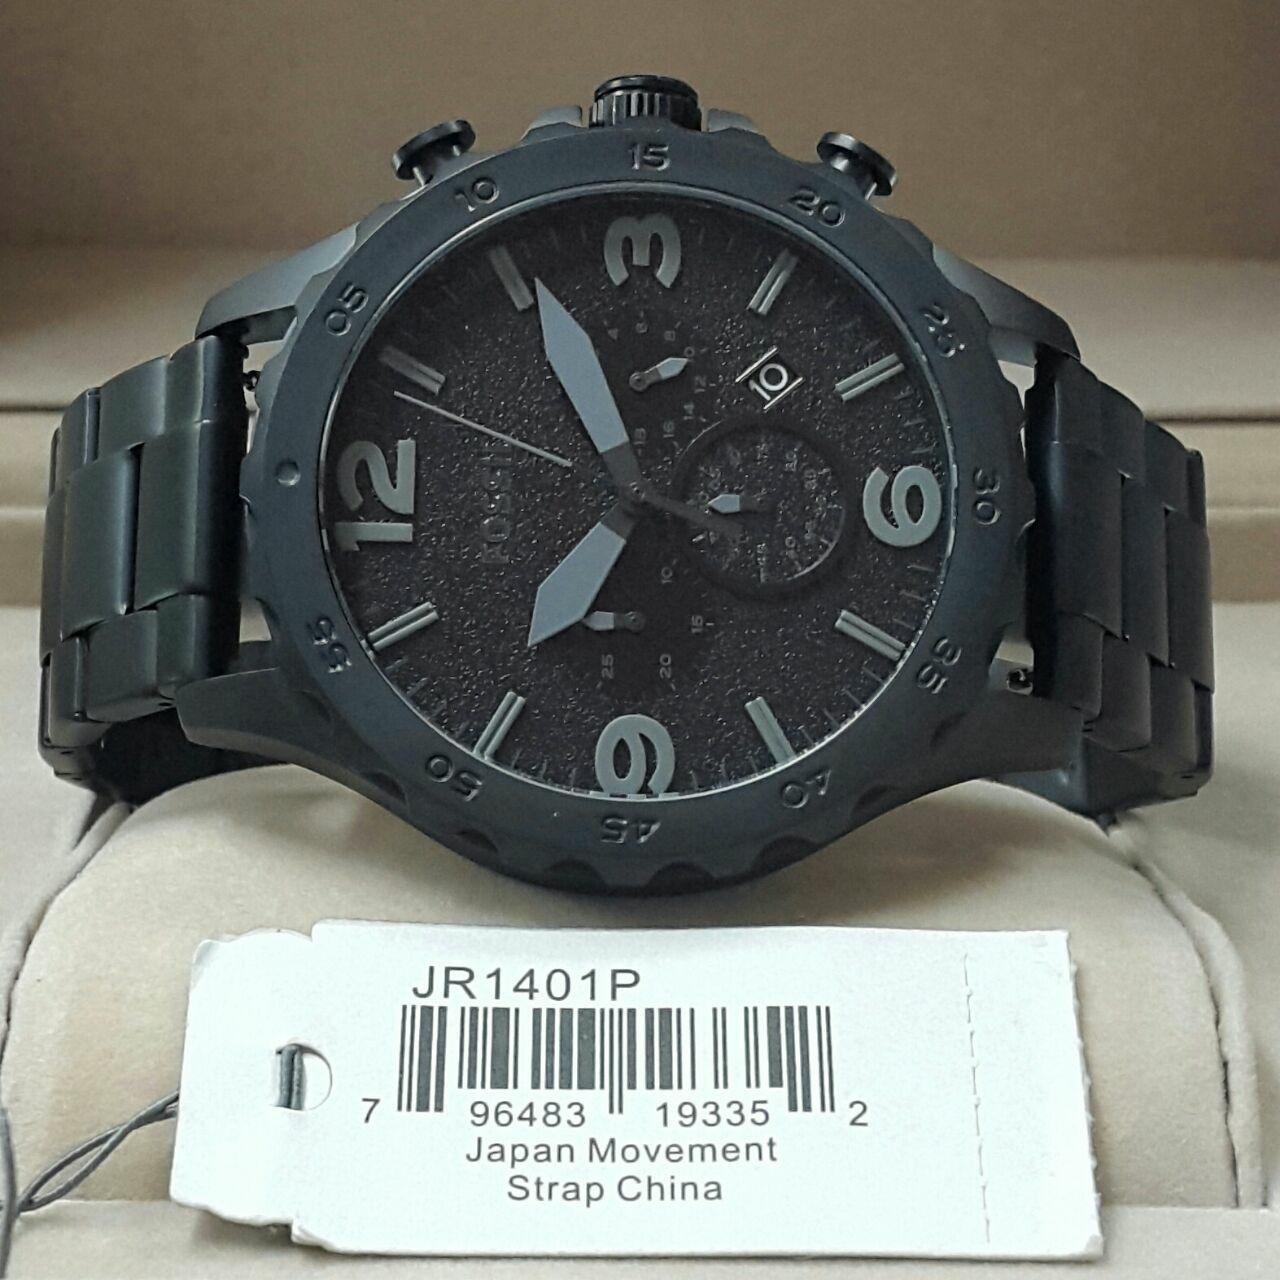 Buy Sell Cheapest Fossil Jr1353 Jr1356 Best Quality Product Deals Jam Tangan Pria Jr 1401 Jr1437 Series Ori Bm